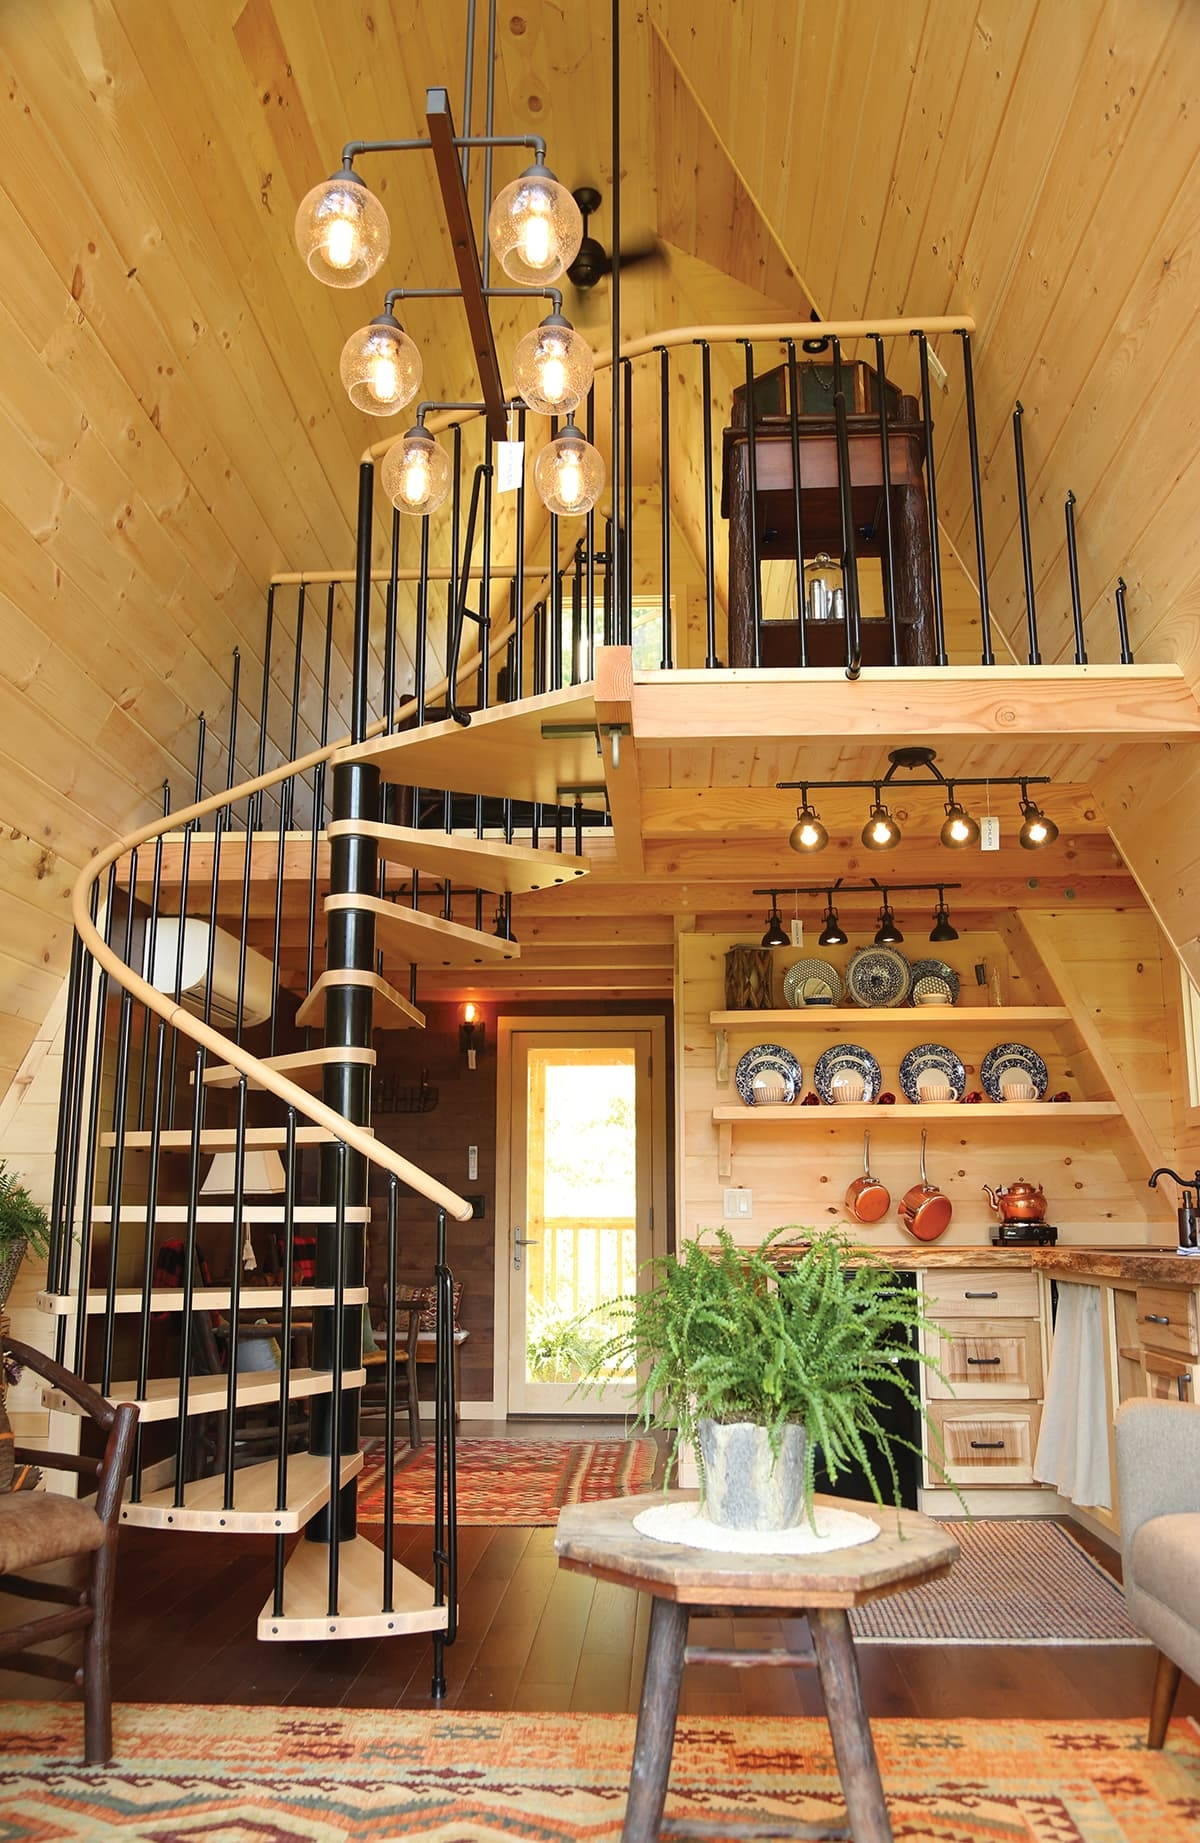 Adding A Spiral Staircase Extreme How To | 10 Foot Spiral Staircase | Reroute Galvanized | Lowes | Stair Kit | Winding Staircase | Staircase Kit